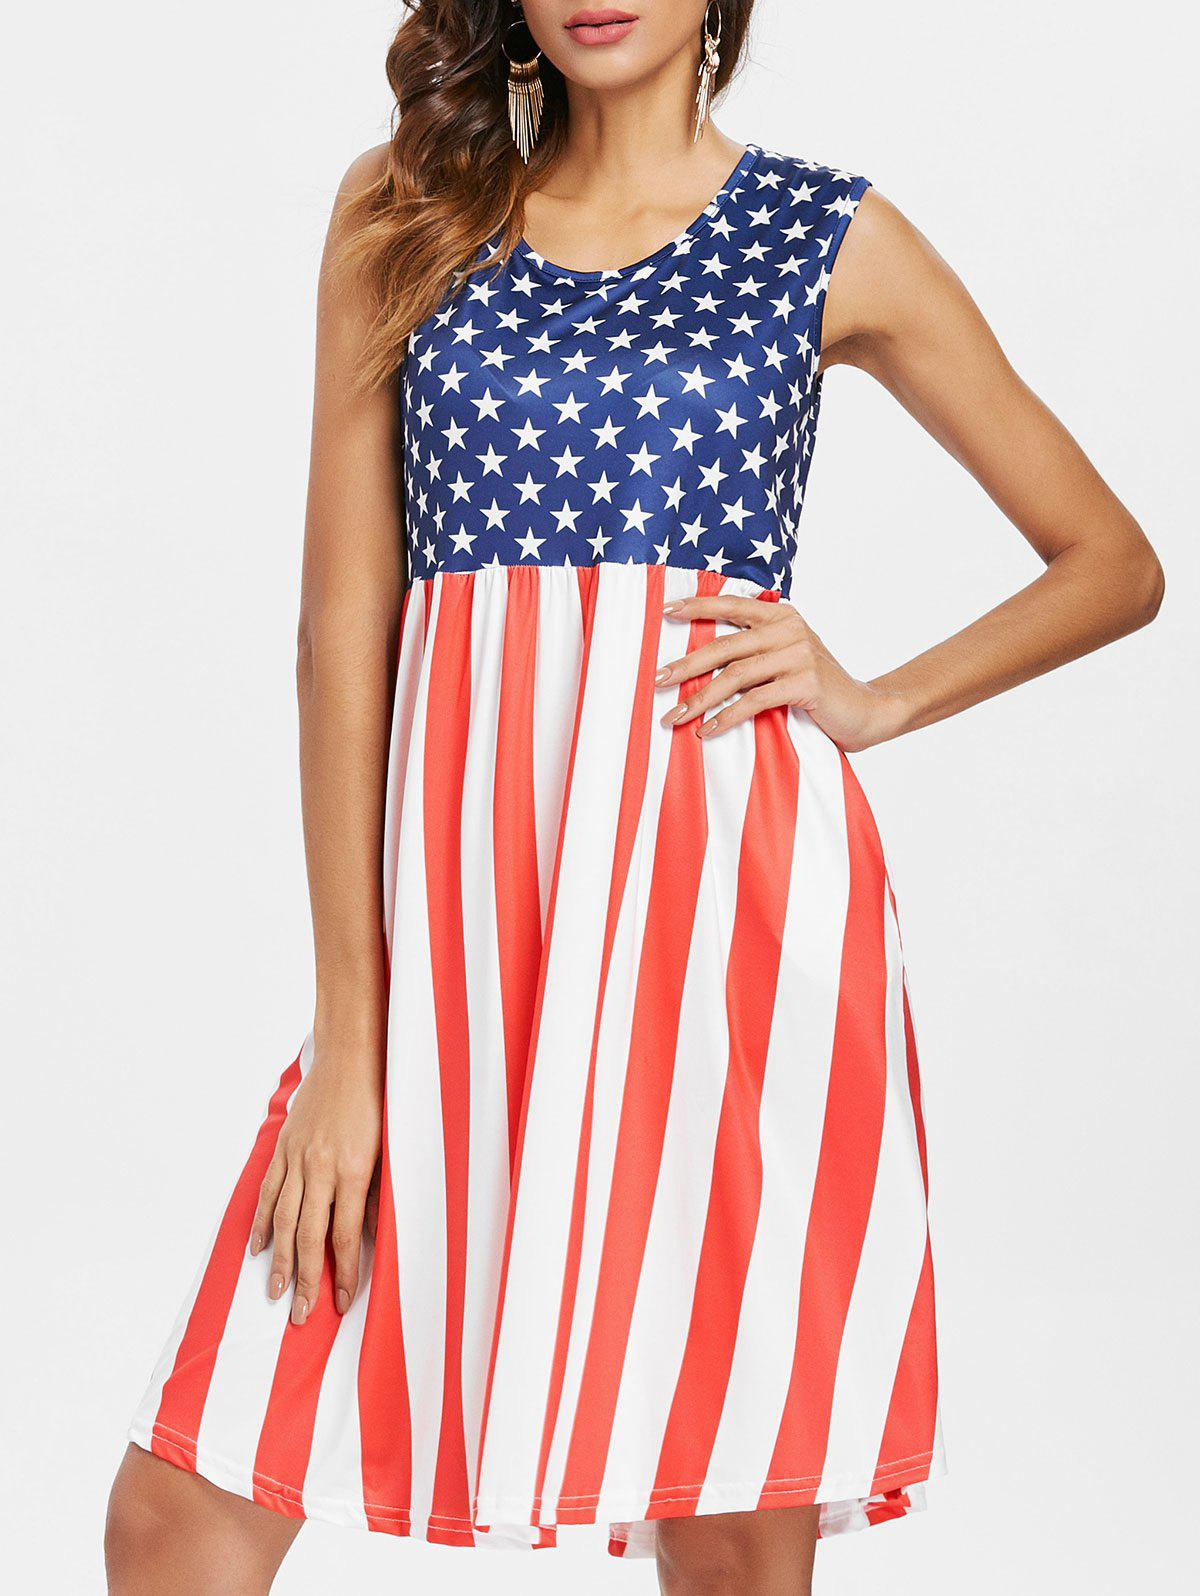 Patriotic American Flag Mid Calf Dress - multicolor XL